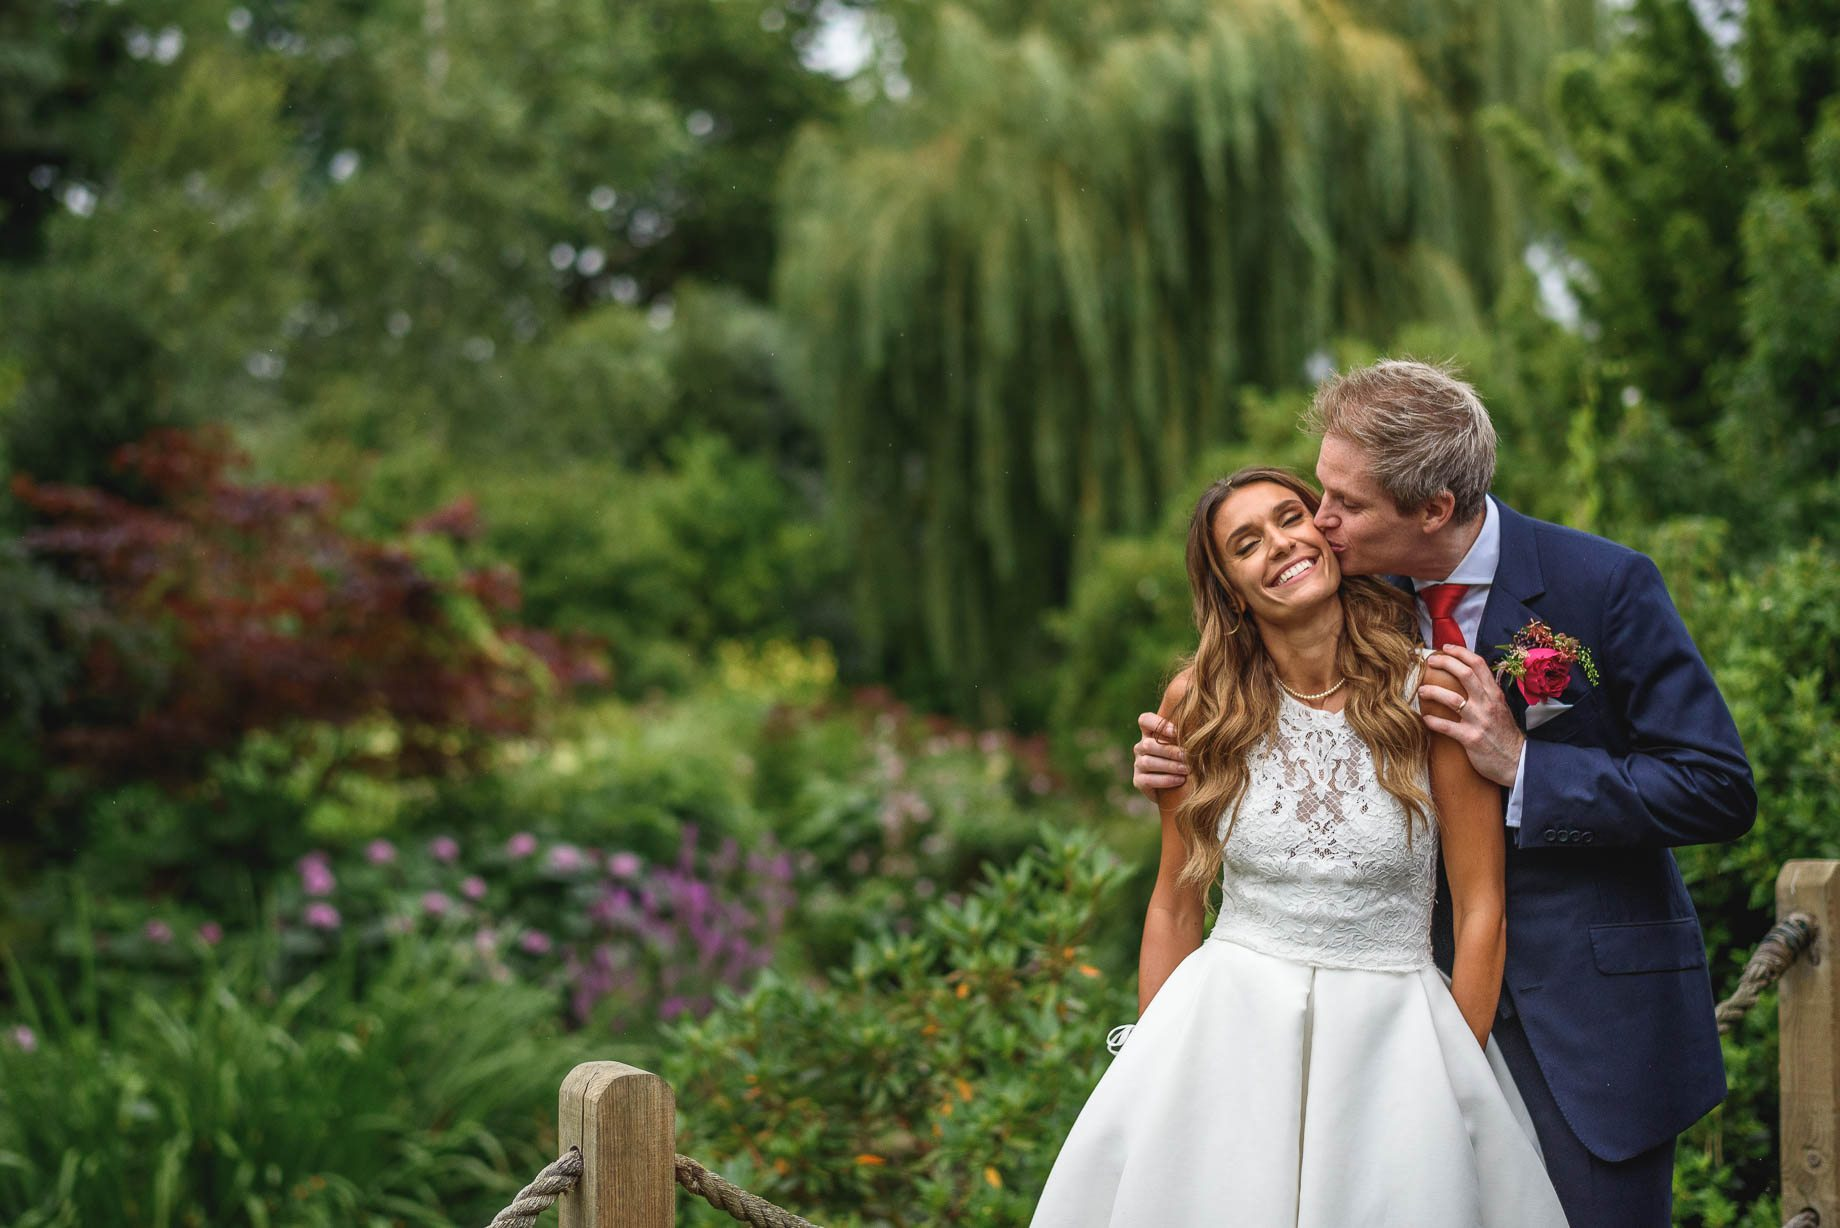 surrey-wedding-photography-guy-collier-photography-claire-and-tom-157-of-227